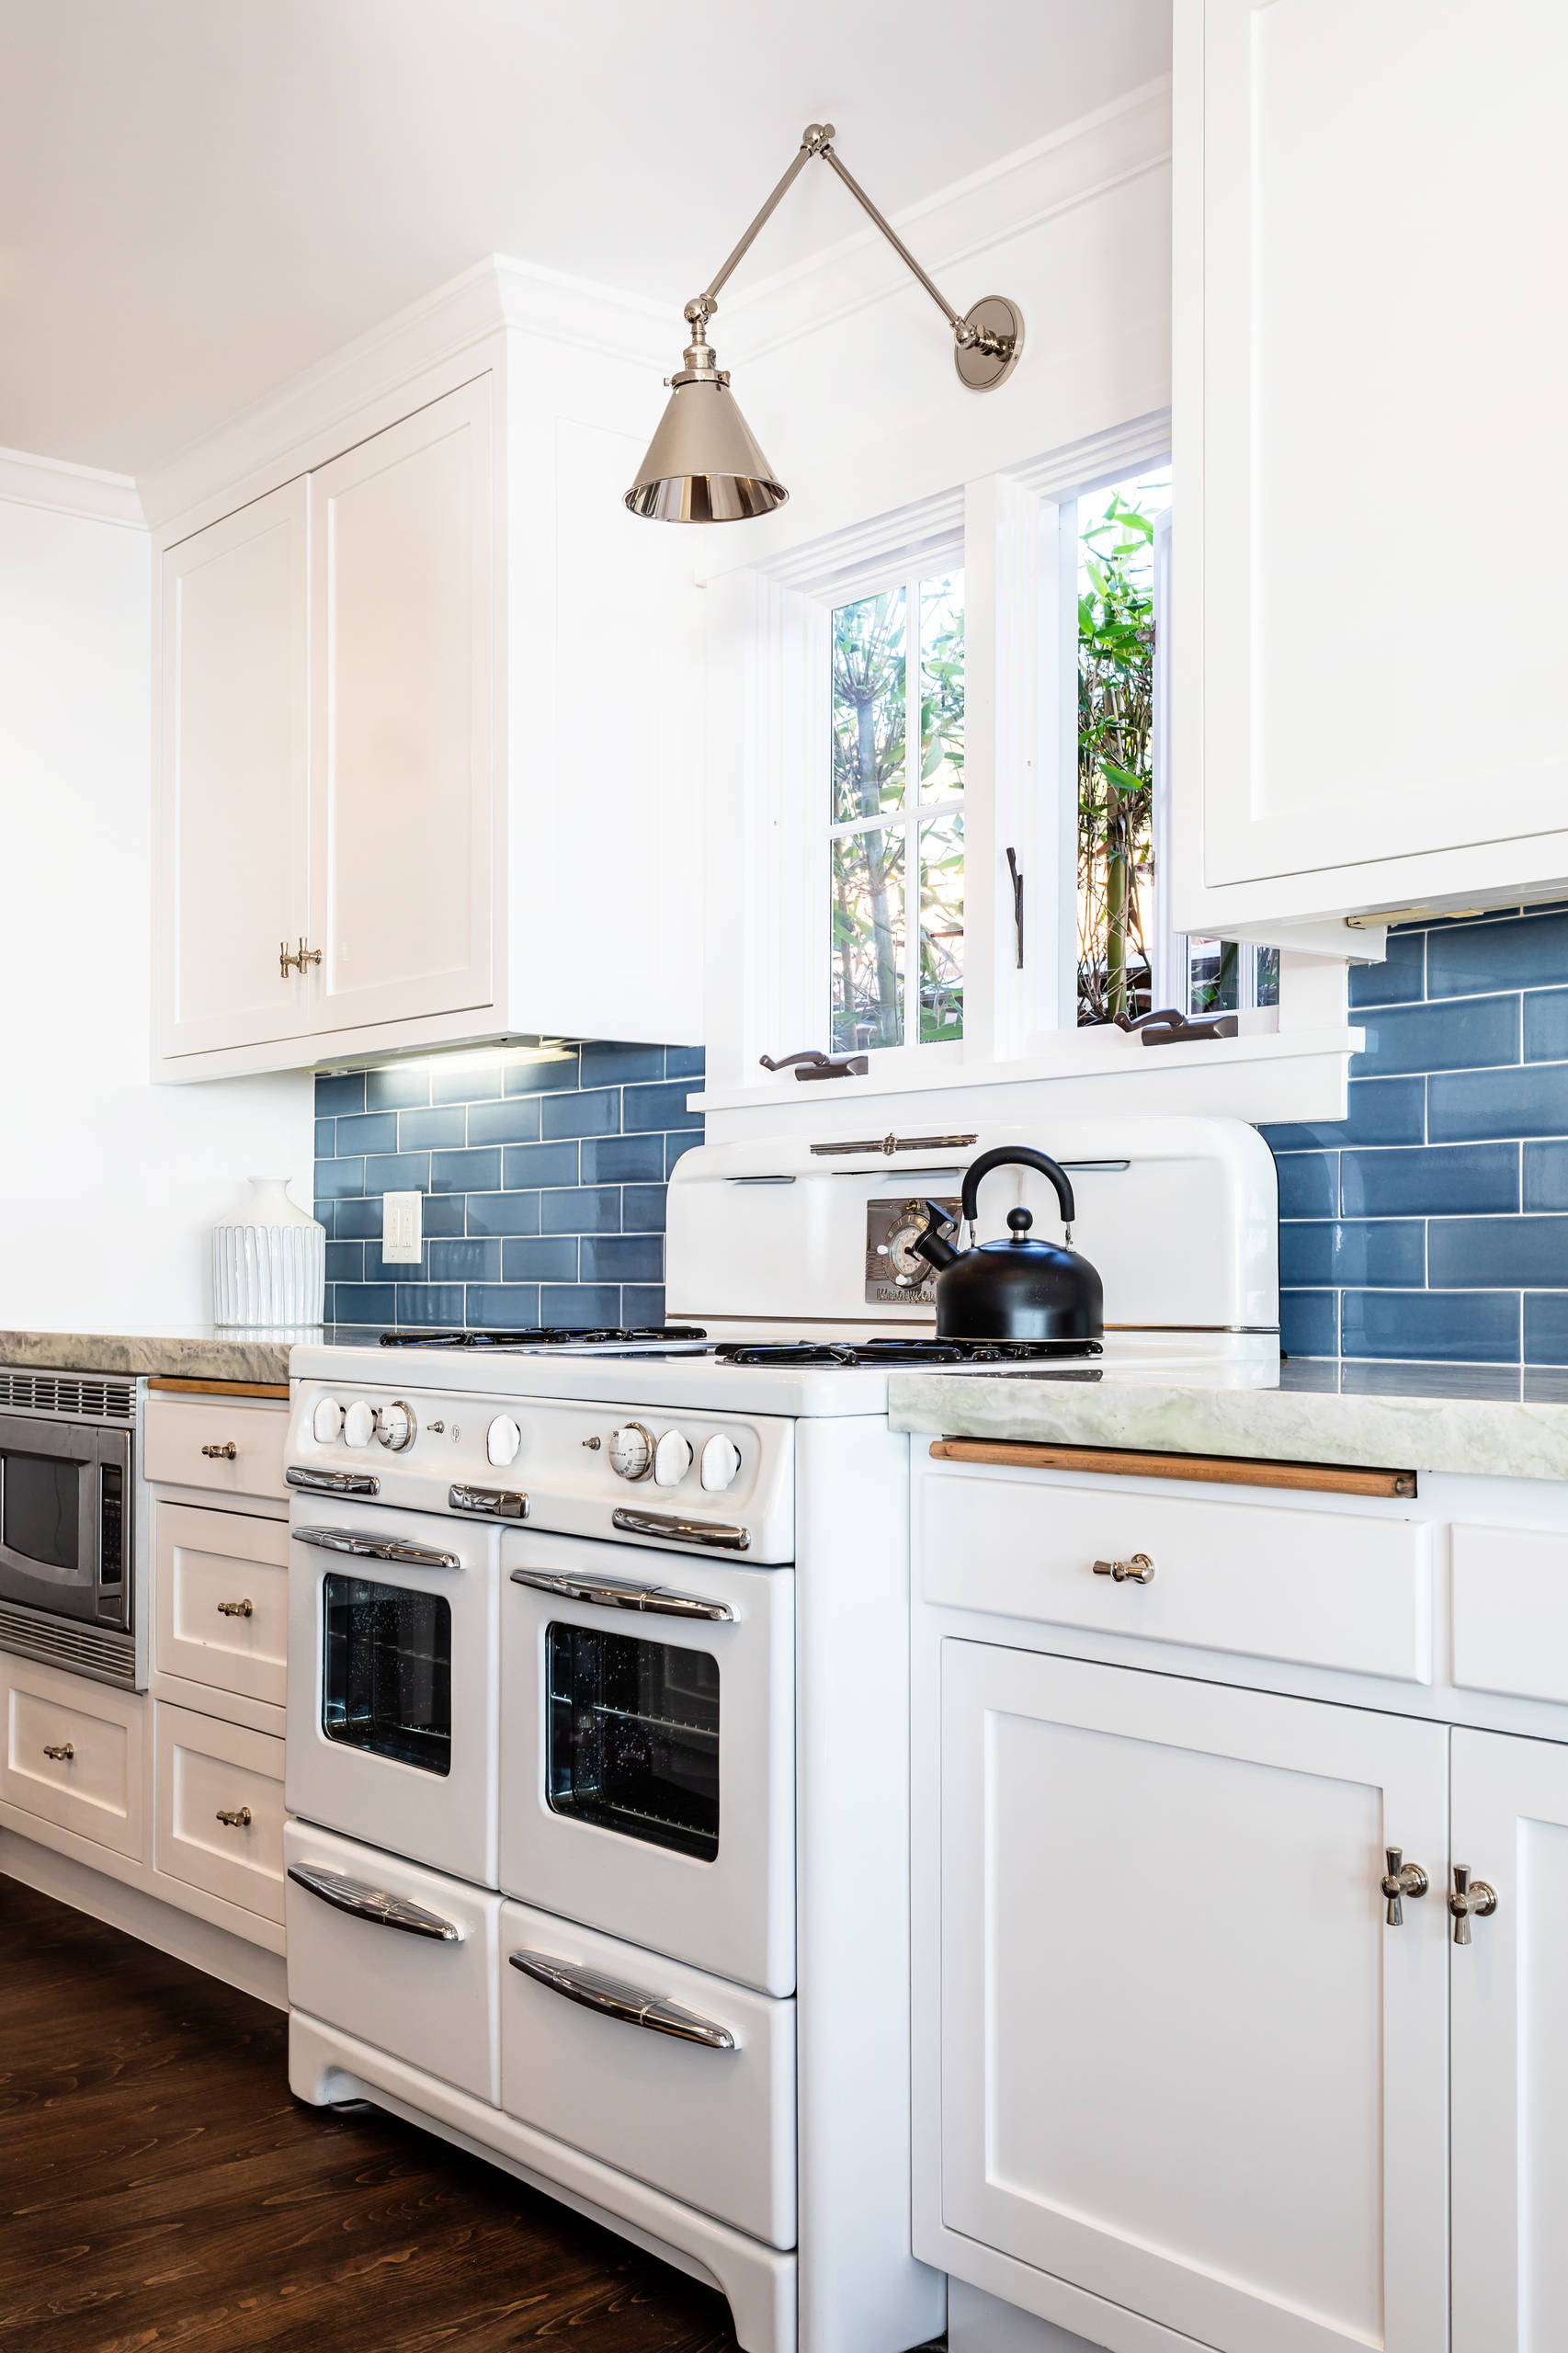 9 Beautiful Kitchen with White Appliances Pictures & Ideas   July ...